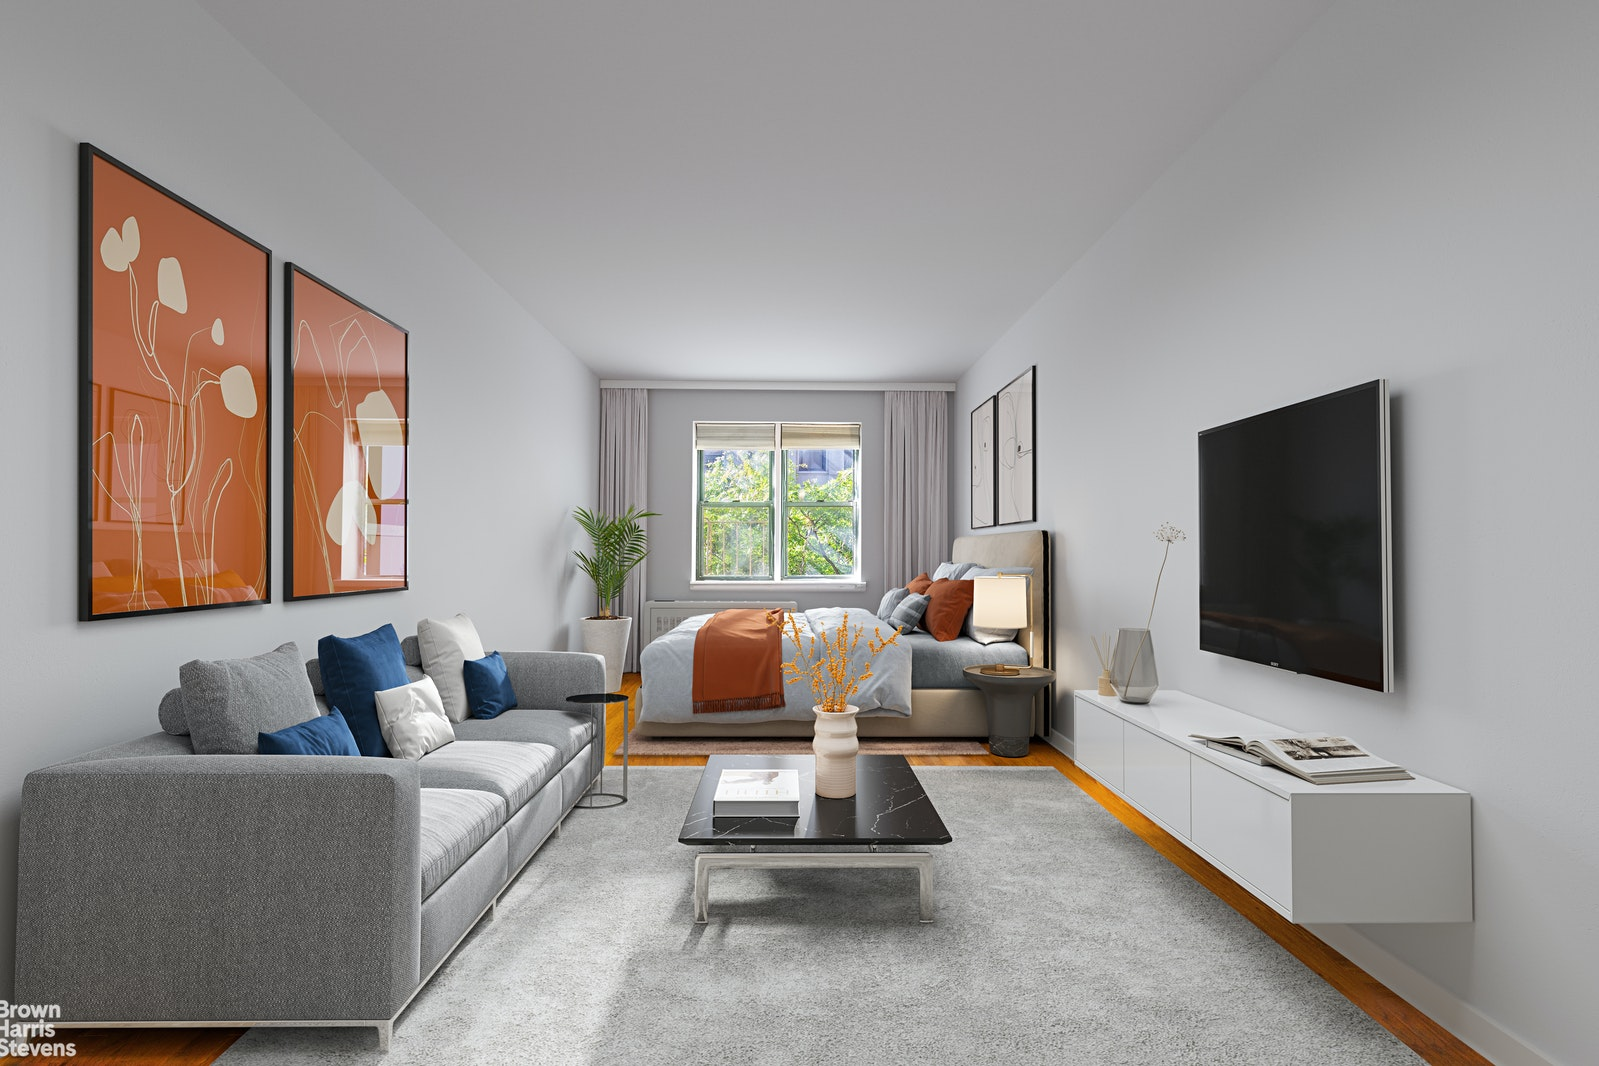 203 East 89th Street 3a, Upper East Side, NYC, 10128, $345,000, Property For Sale, Halstead Real Estate, Photo 1